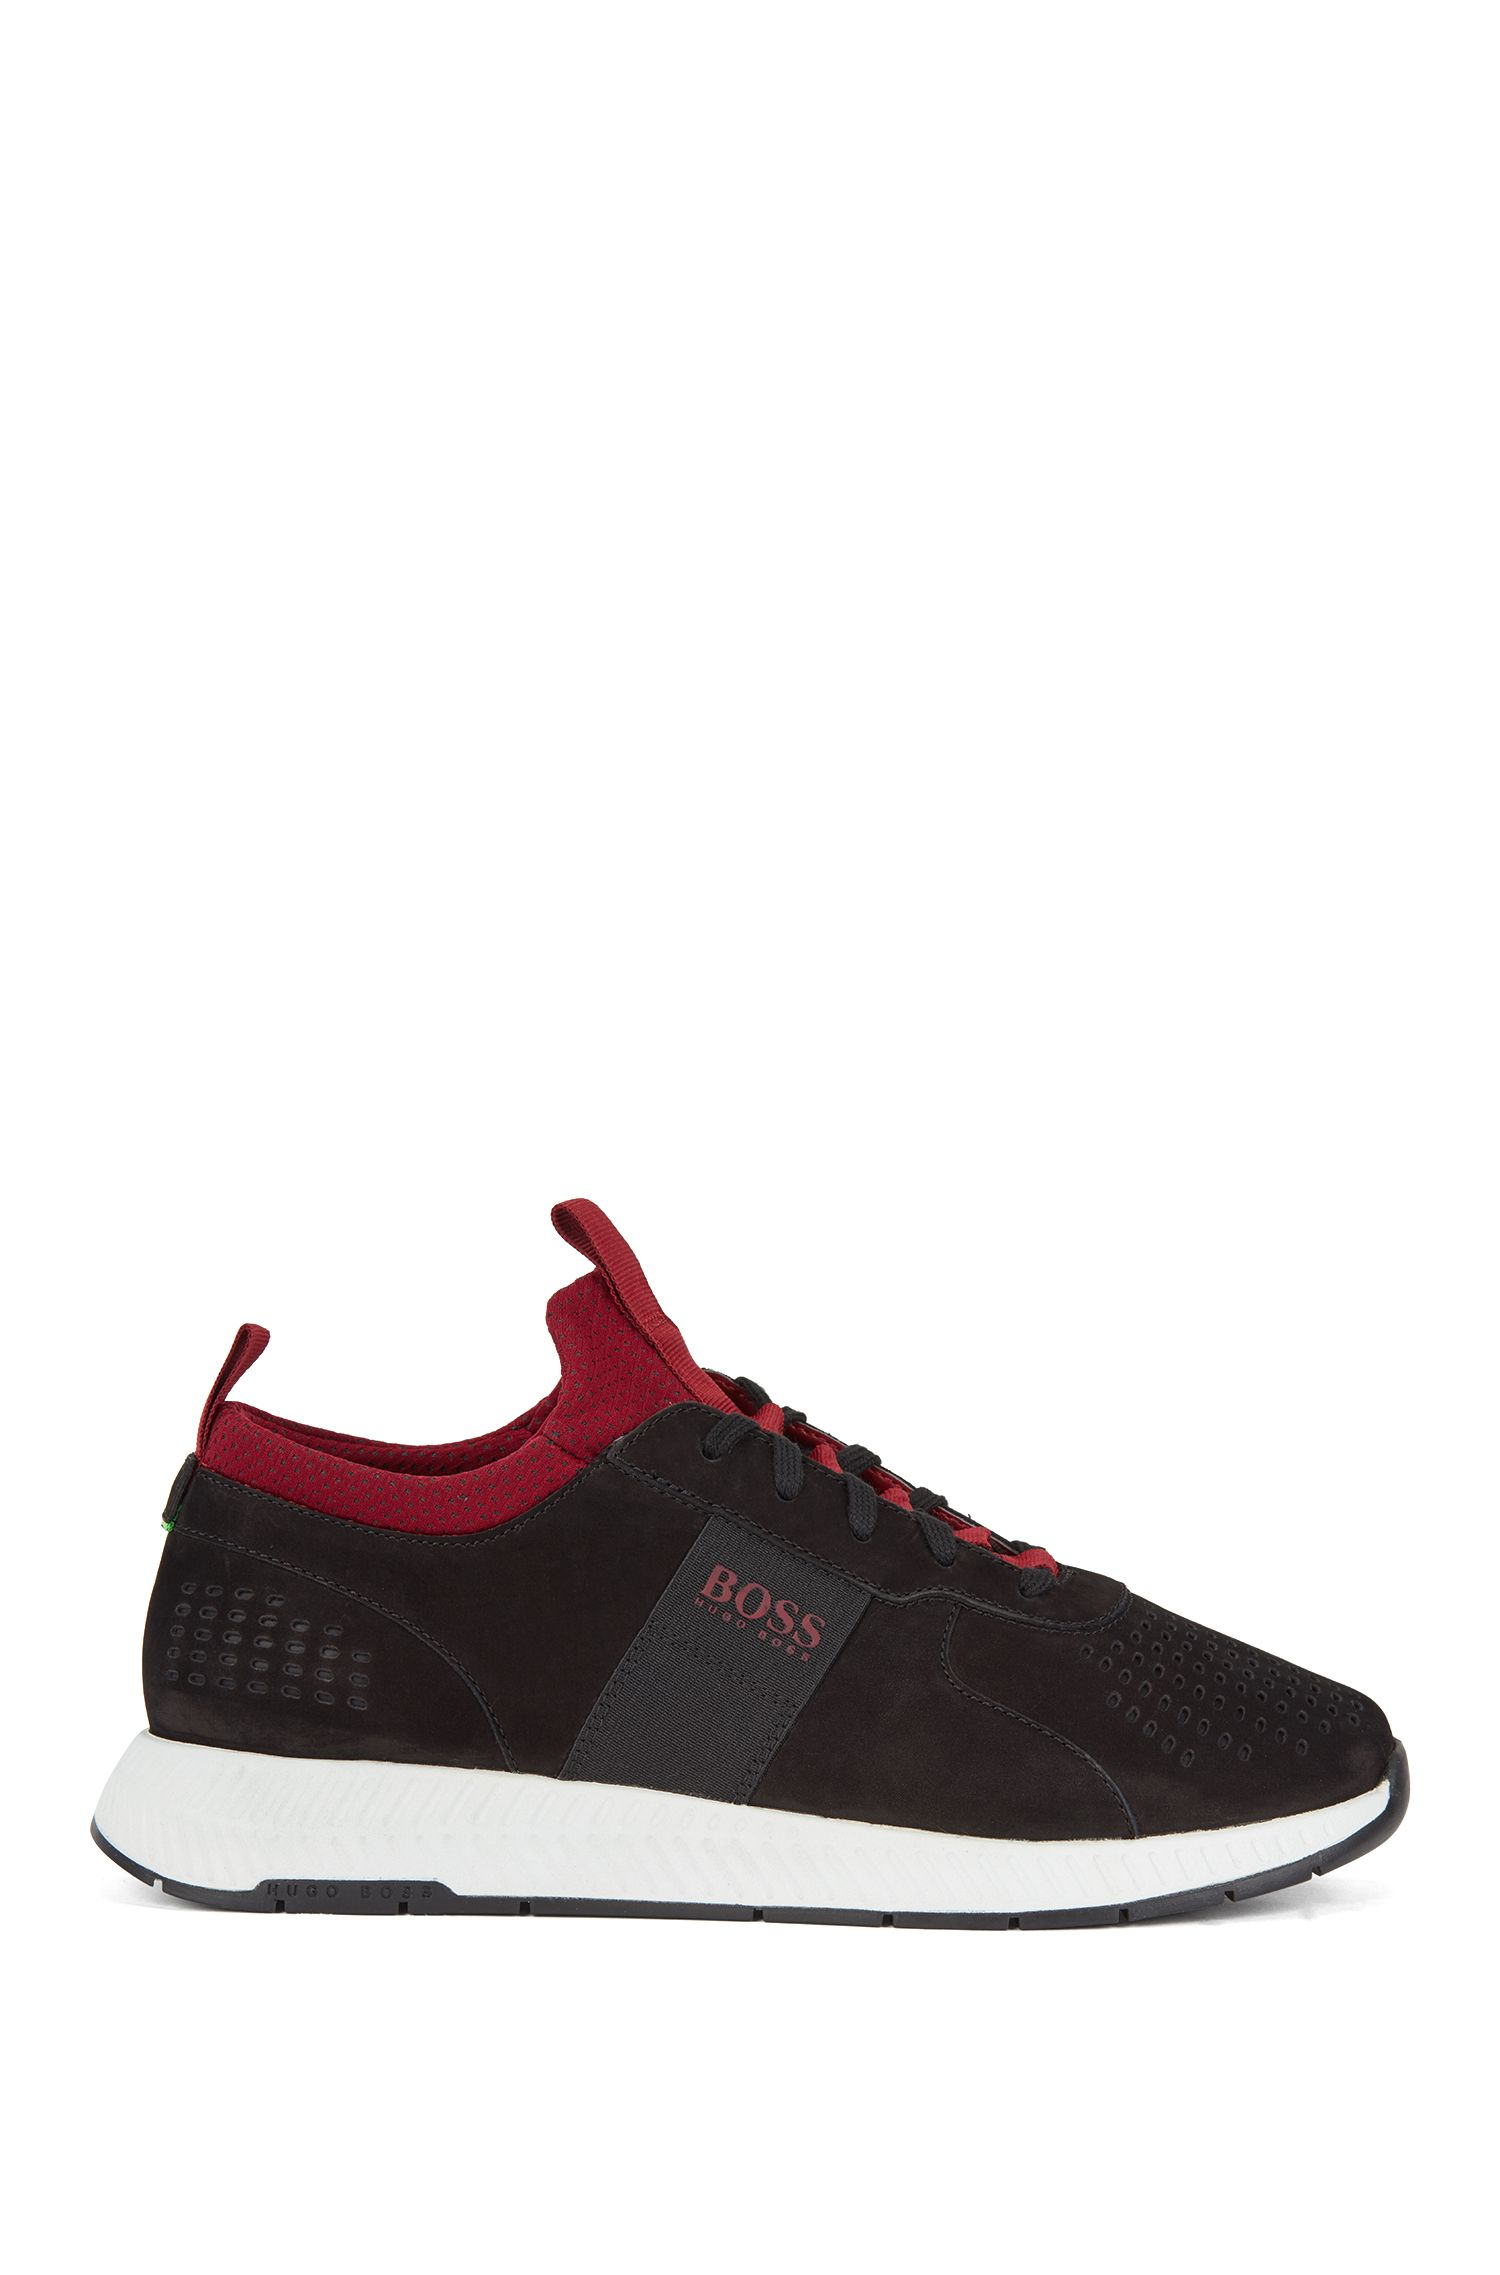 Running-inspired sneakers in perforated nubuck leather, Black